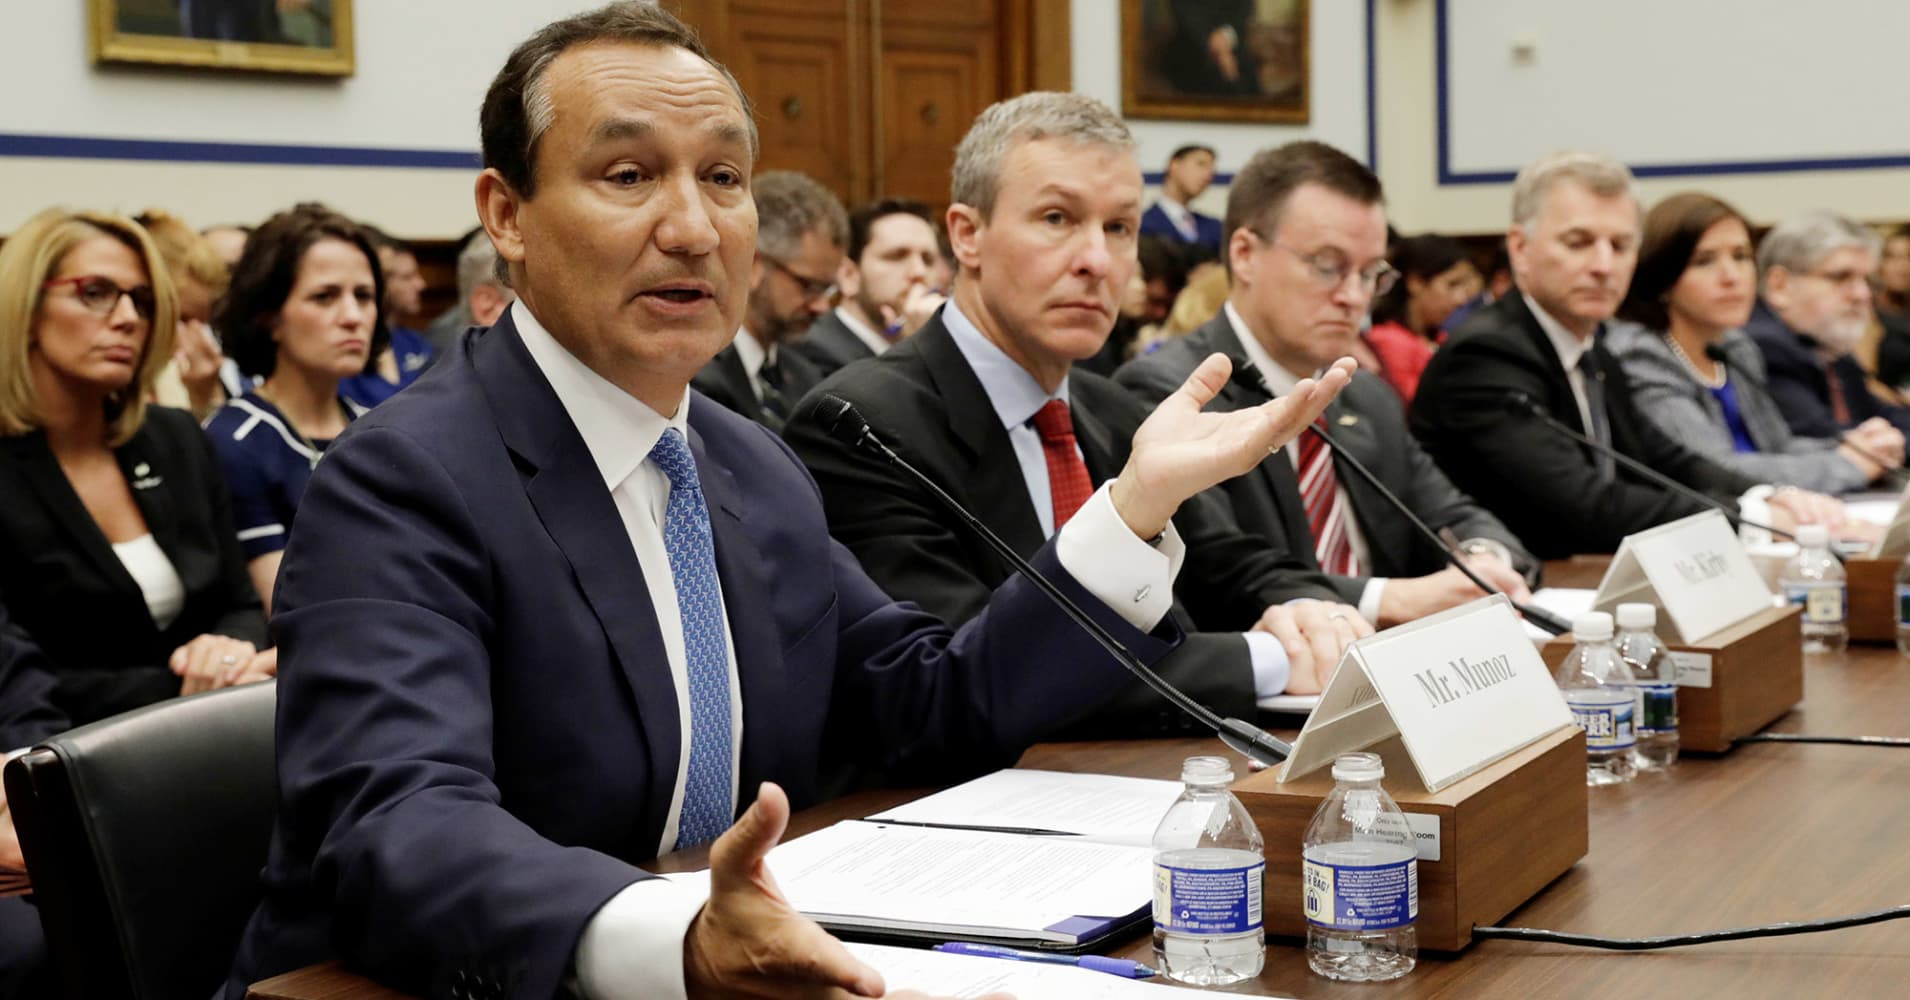 United CEO testifies to angry lawmakers: 'I have spent every day thinking about how we got here'